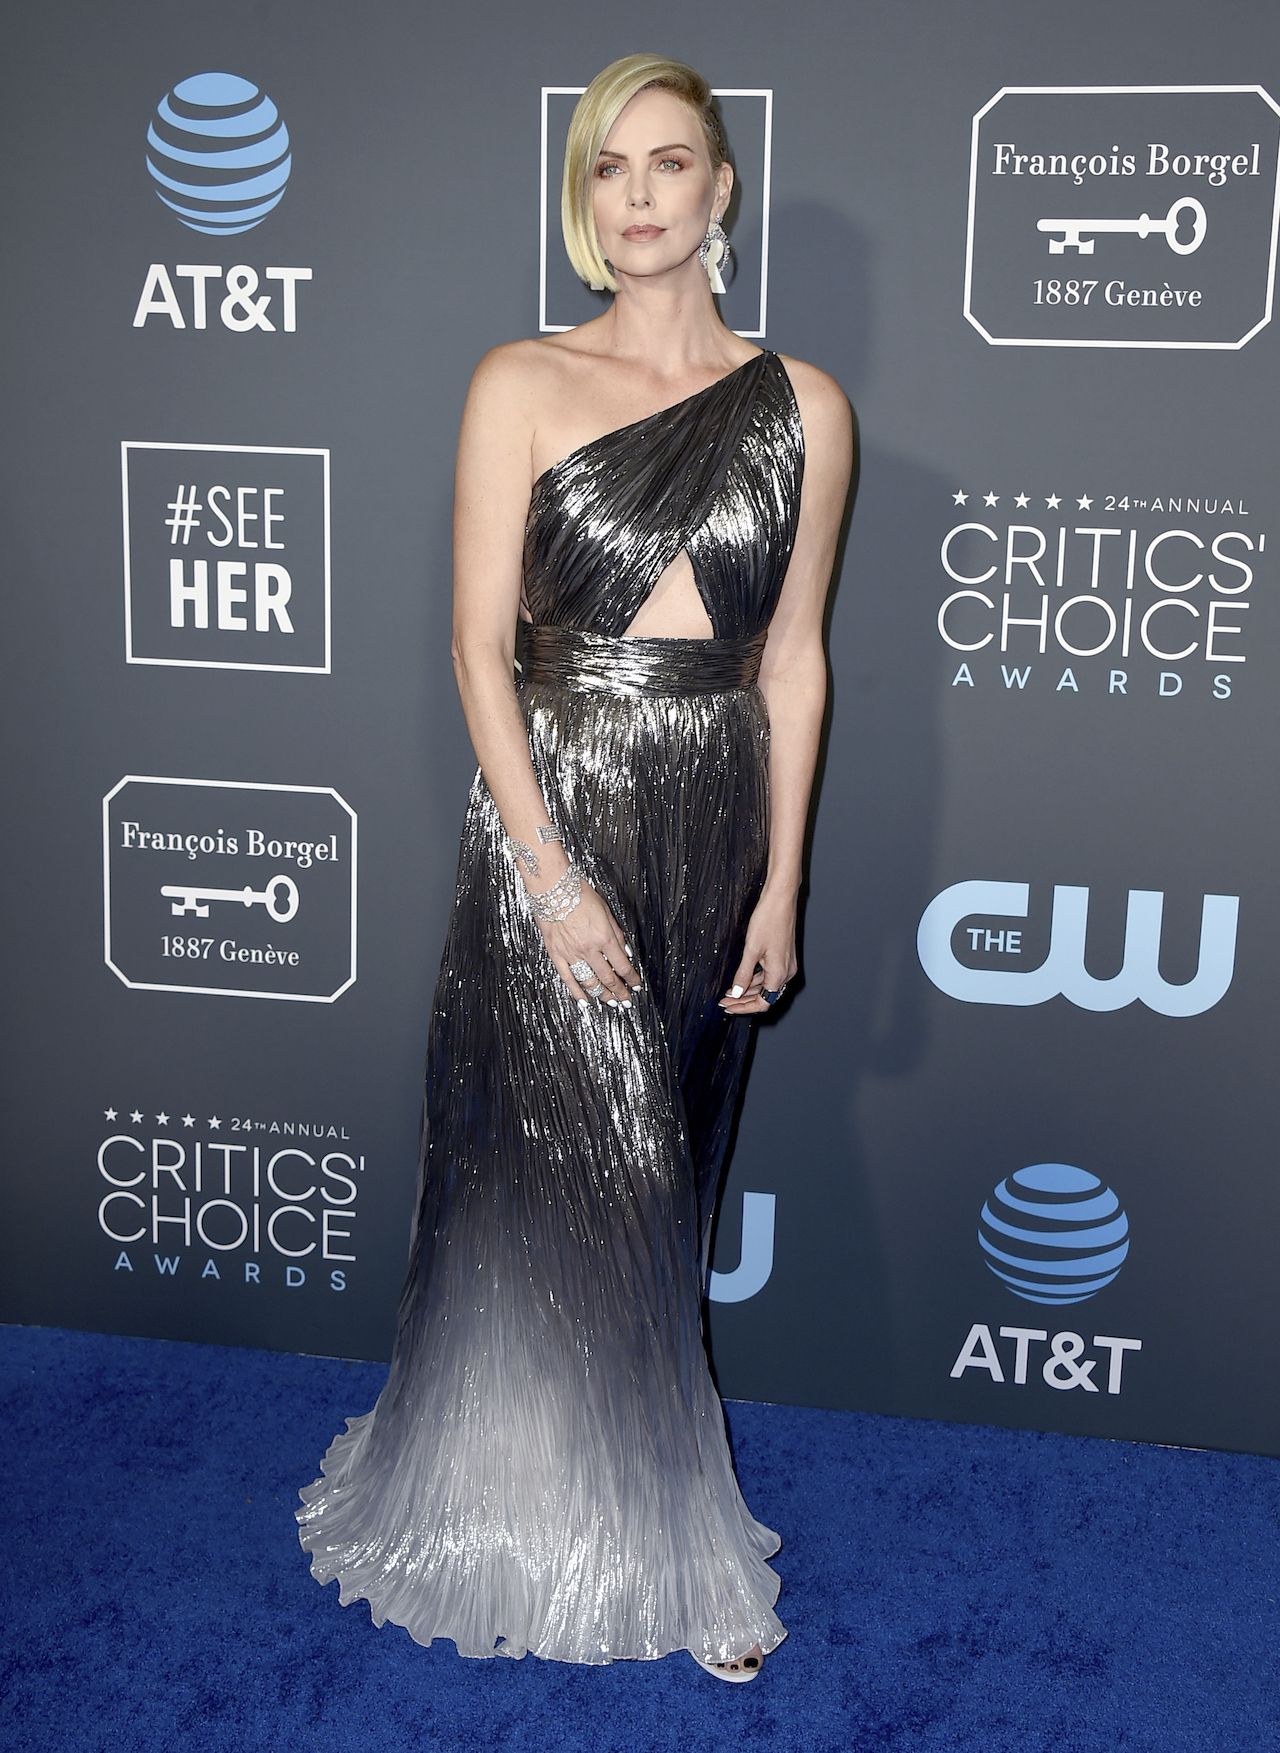 <div class='meta'><div class='origin-logo' data-origin='AP'></div><span class='caption-text' data-credit='Jordan Strauss/Invision/AP'>Charlize Theron arrives at the 24th annual Critics' Choice Awards on Sunday, Jan. 13, 2019, at the Barker Hangar in Santa Monica, Calif.</span></div>